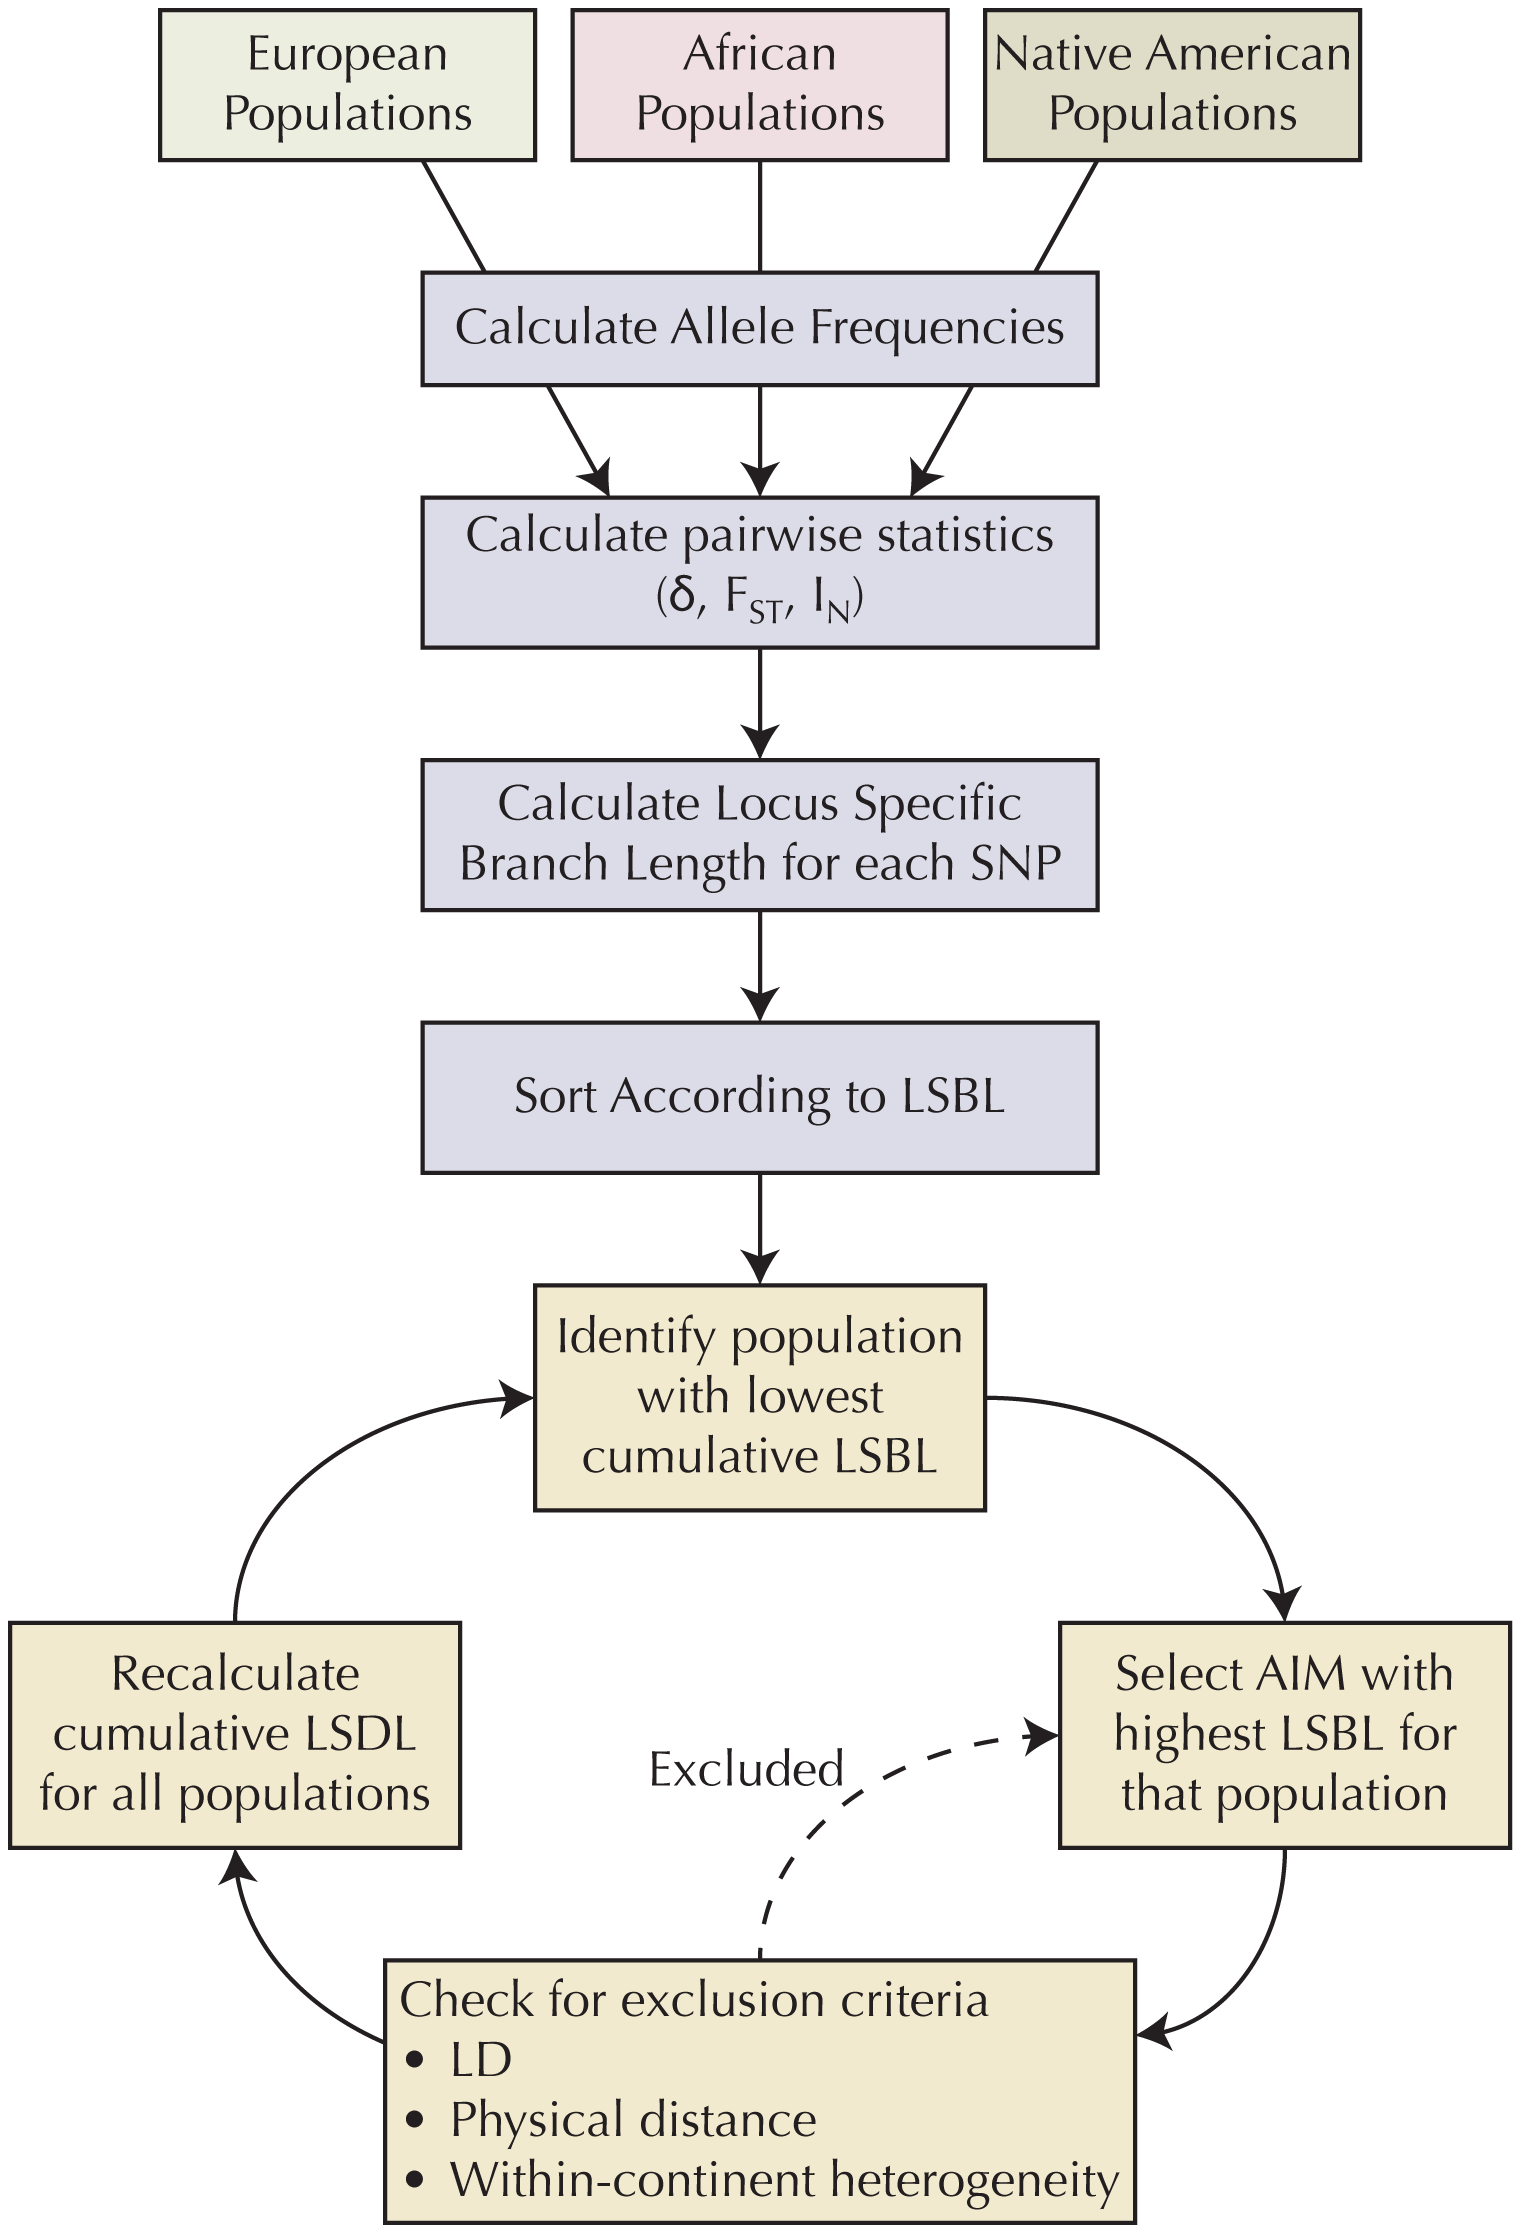 Algorithm for selecting AIMs.